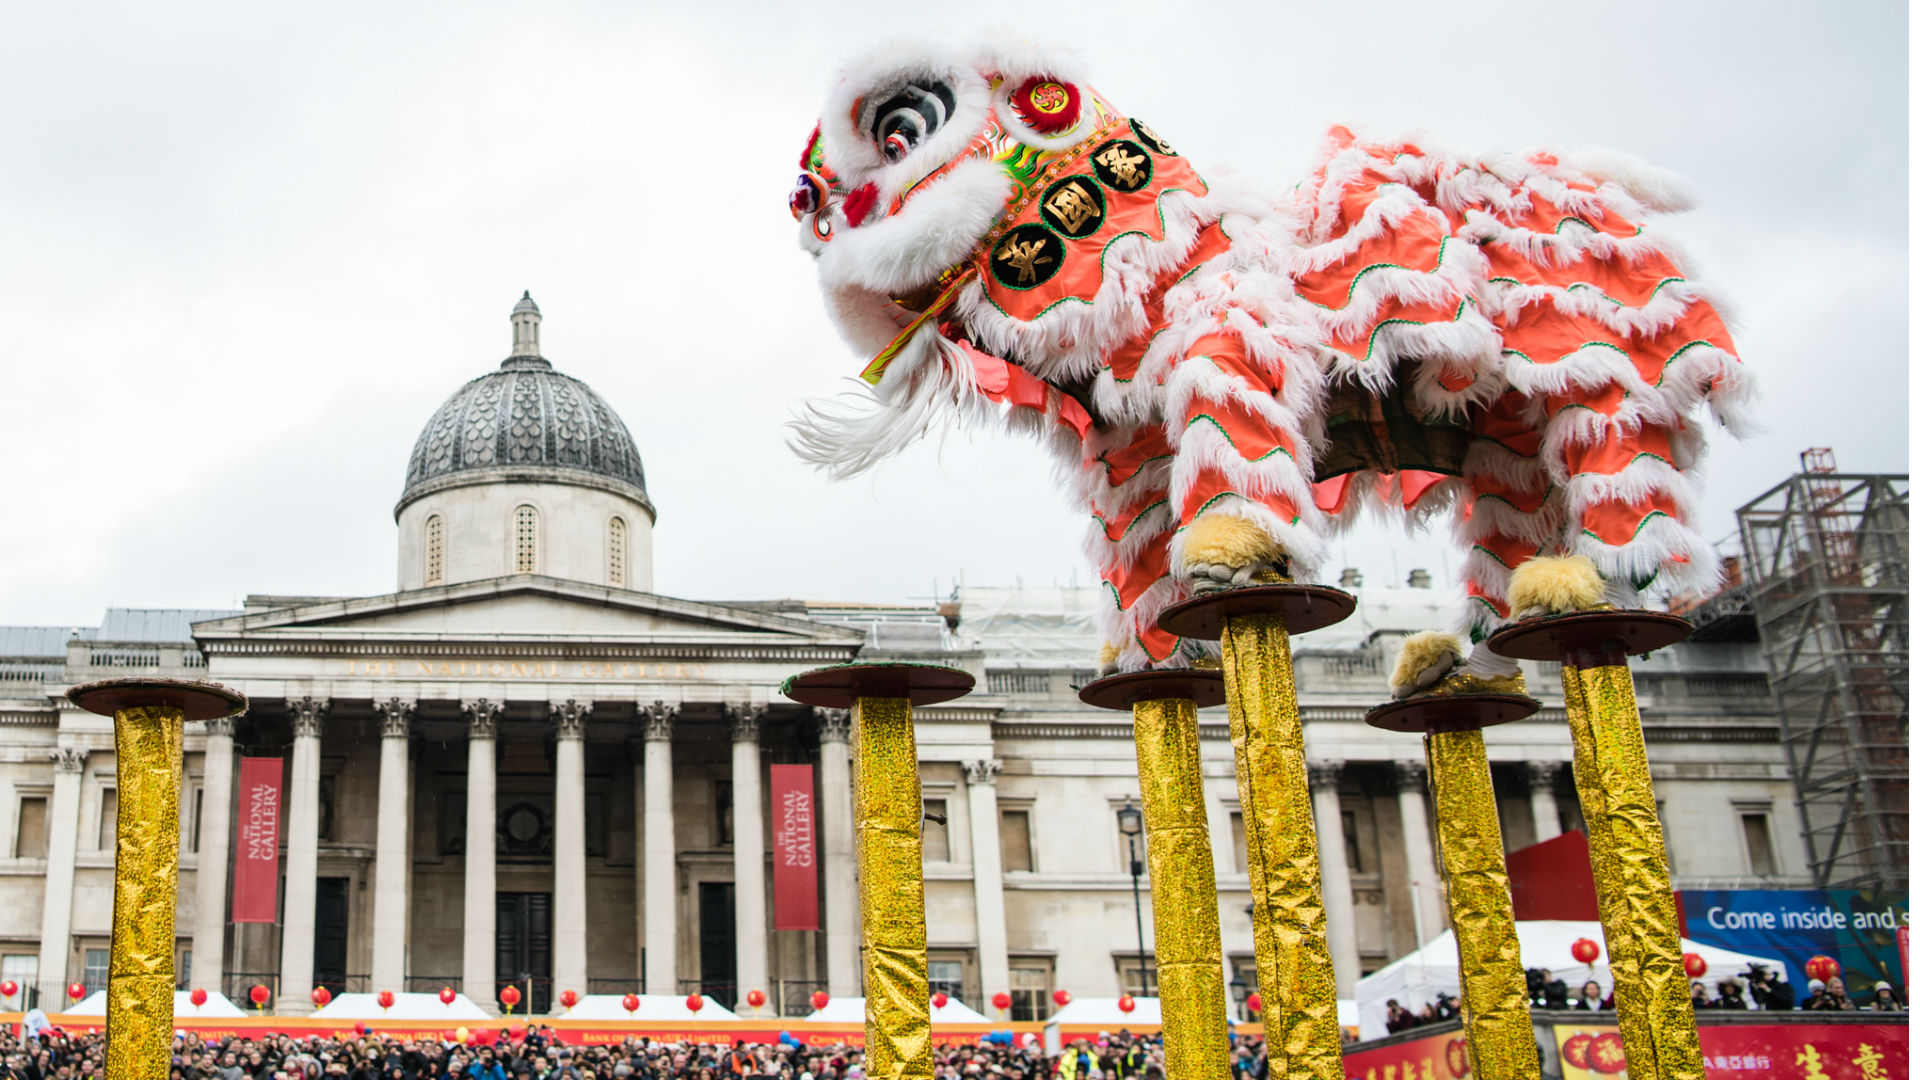 Lion dance in Trafalgar Square at Chinese New Year 2017. Photo by: Jon Mo